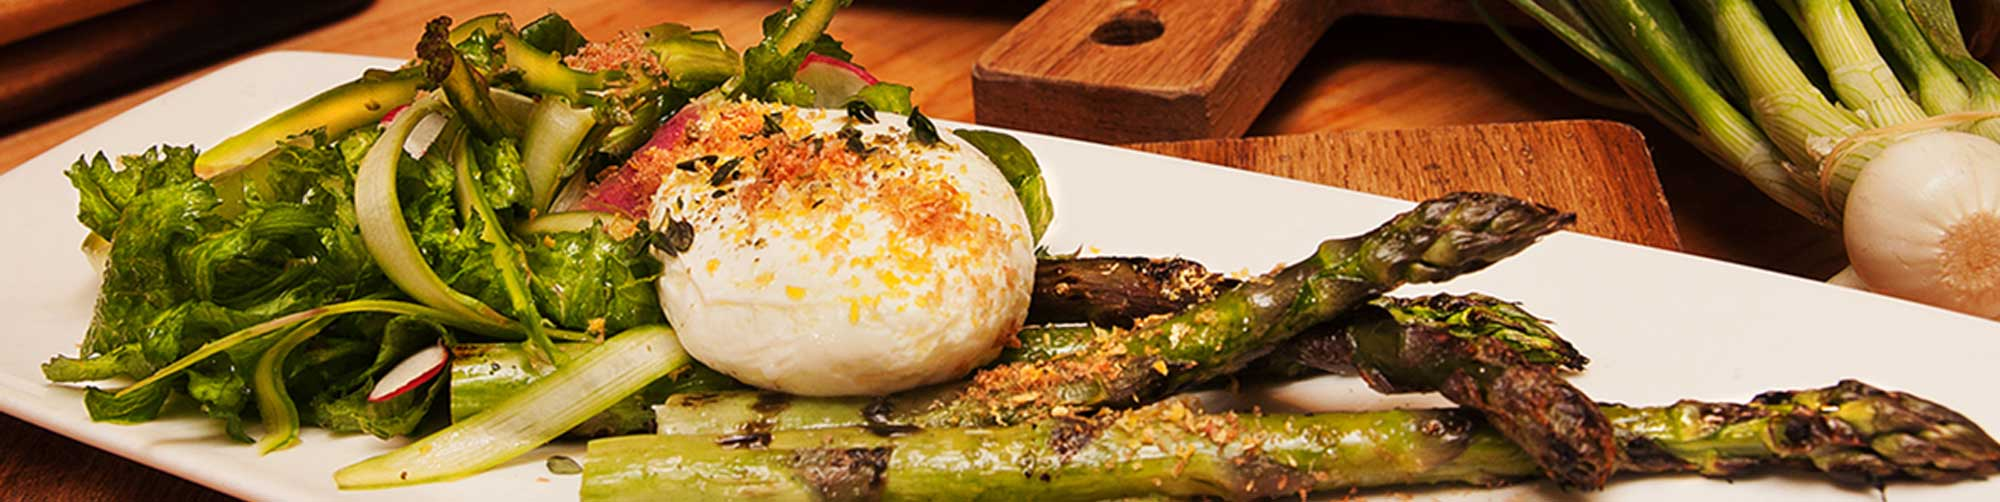 discover central new jersey plate of delicious food from eno terra